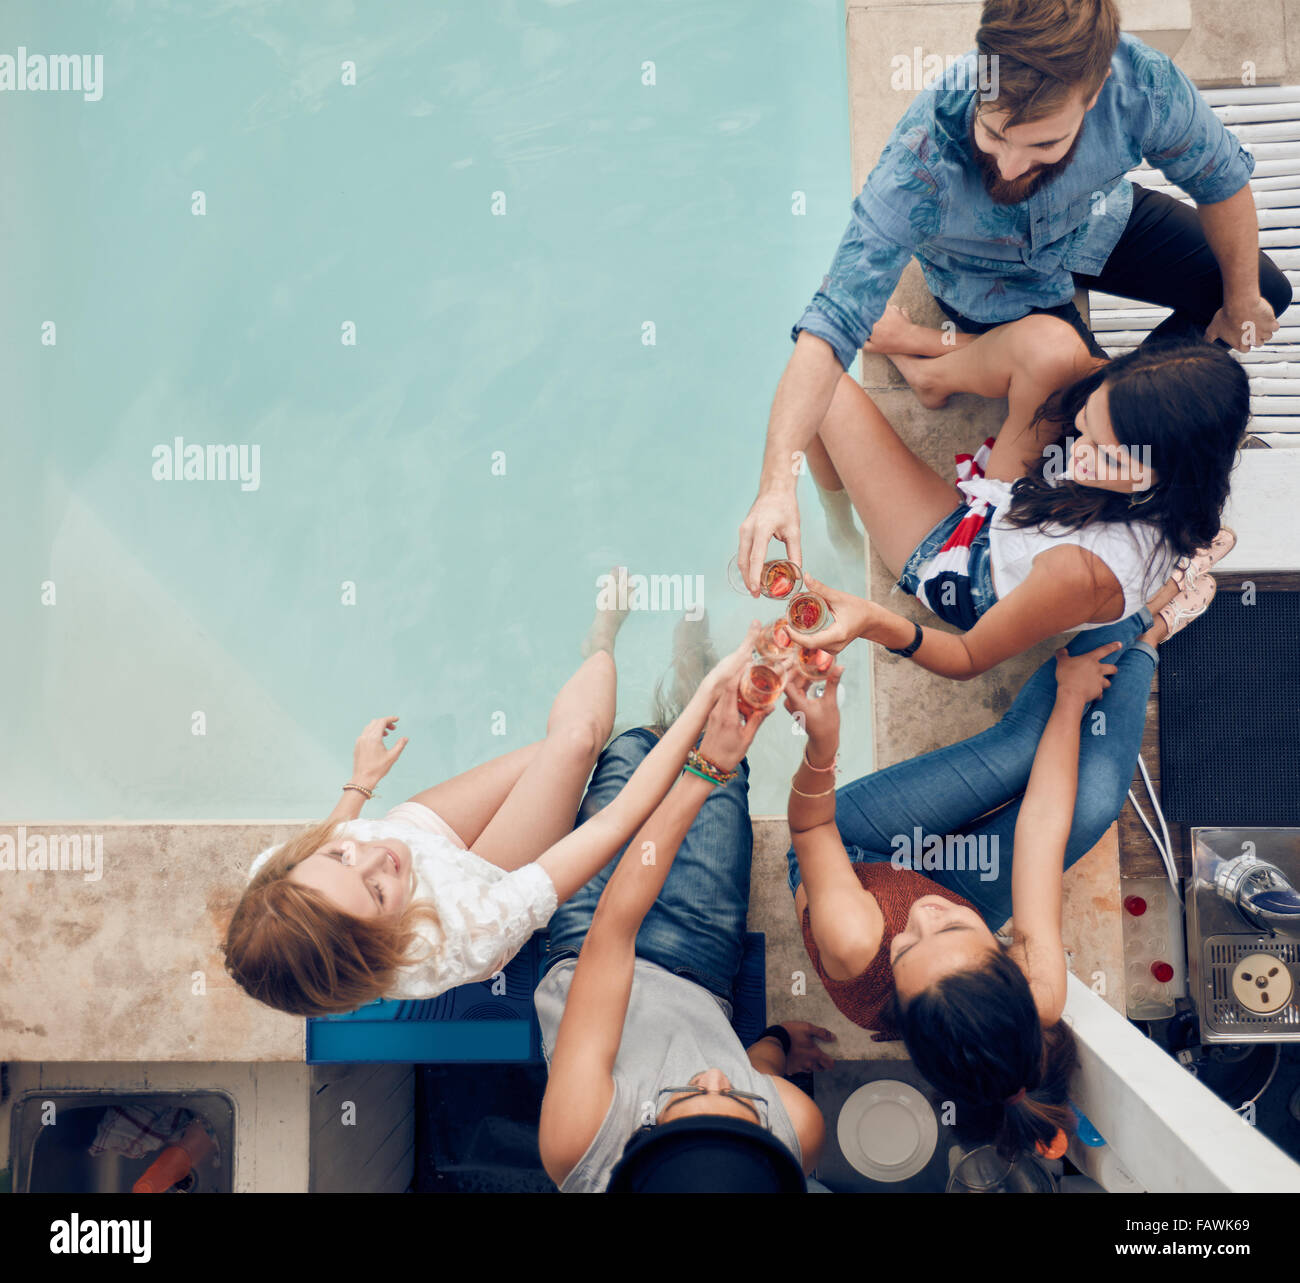 Top view of group of friends toasting at party by a swimming pool. High angle shot of young people sitting by the - Stock Image